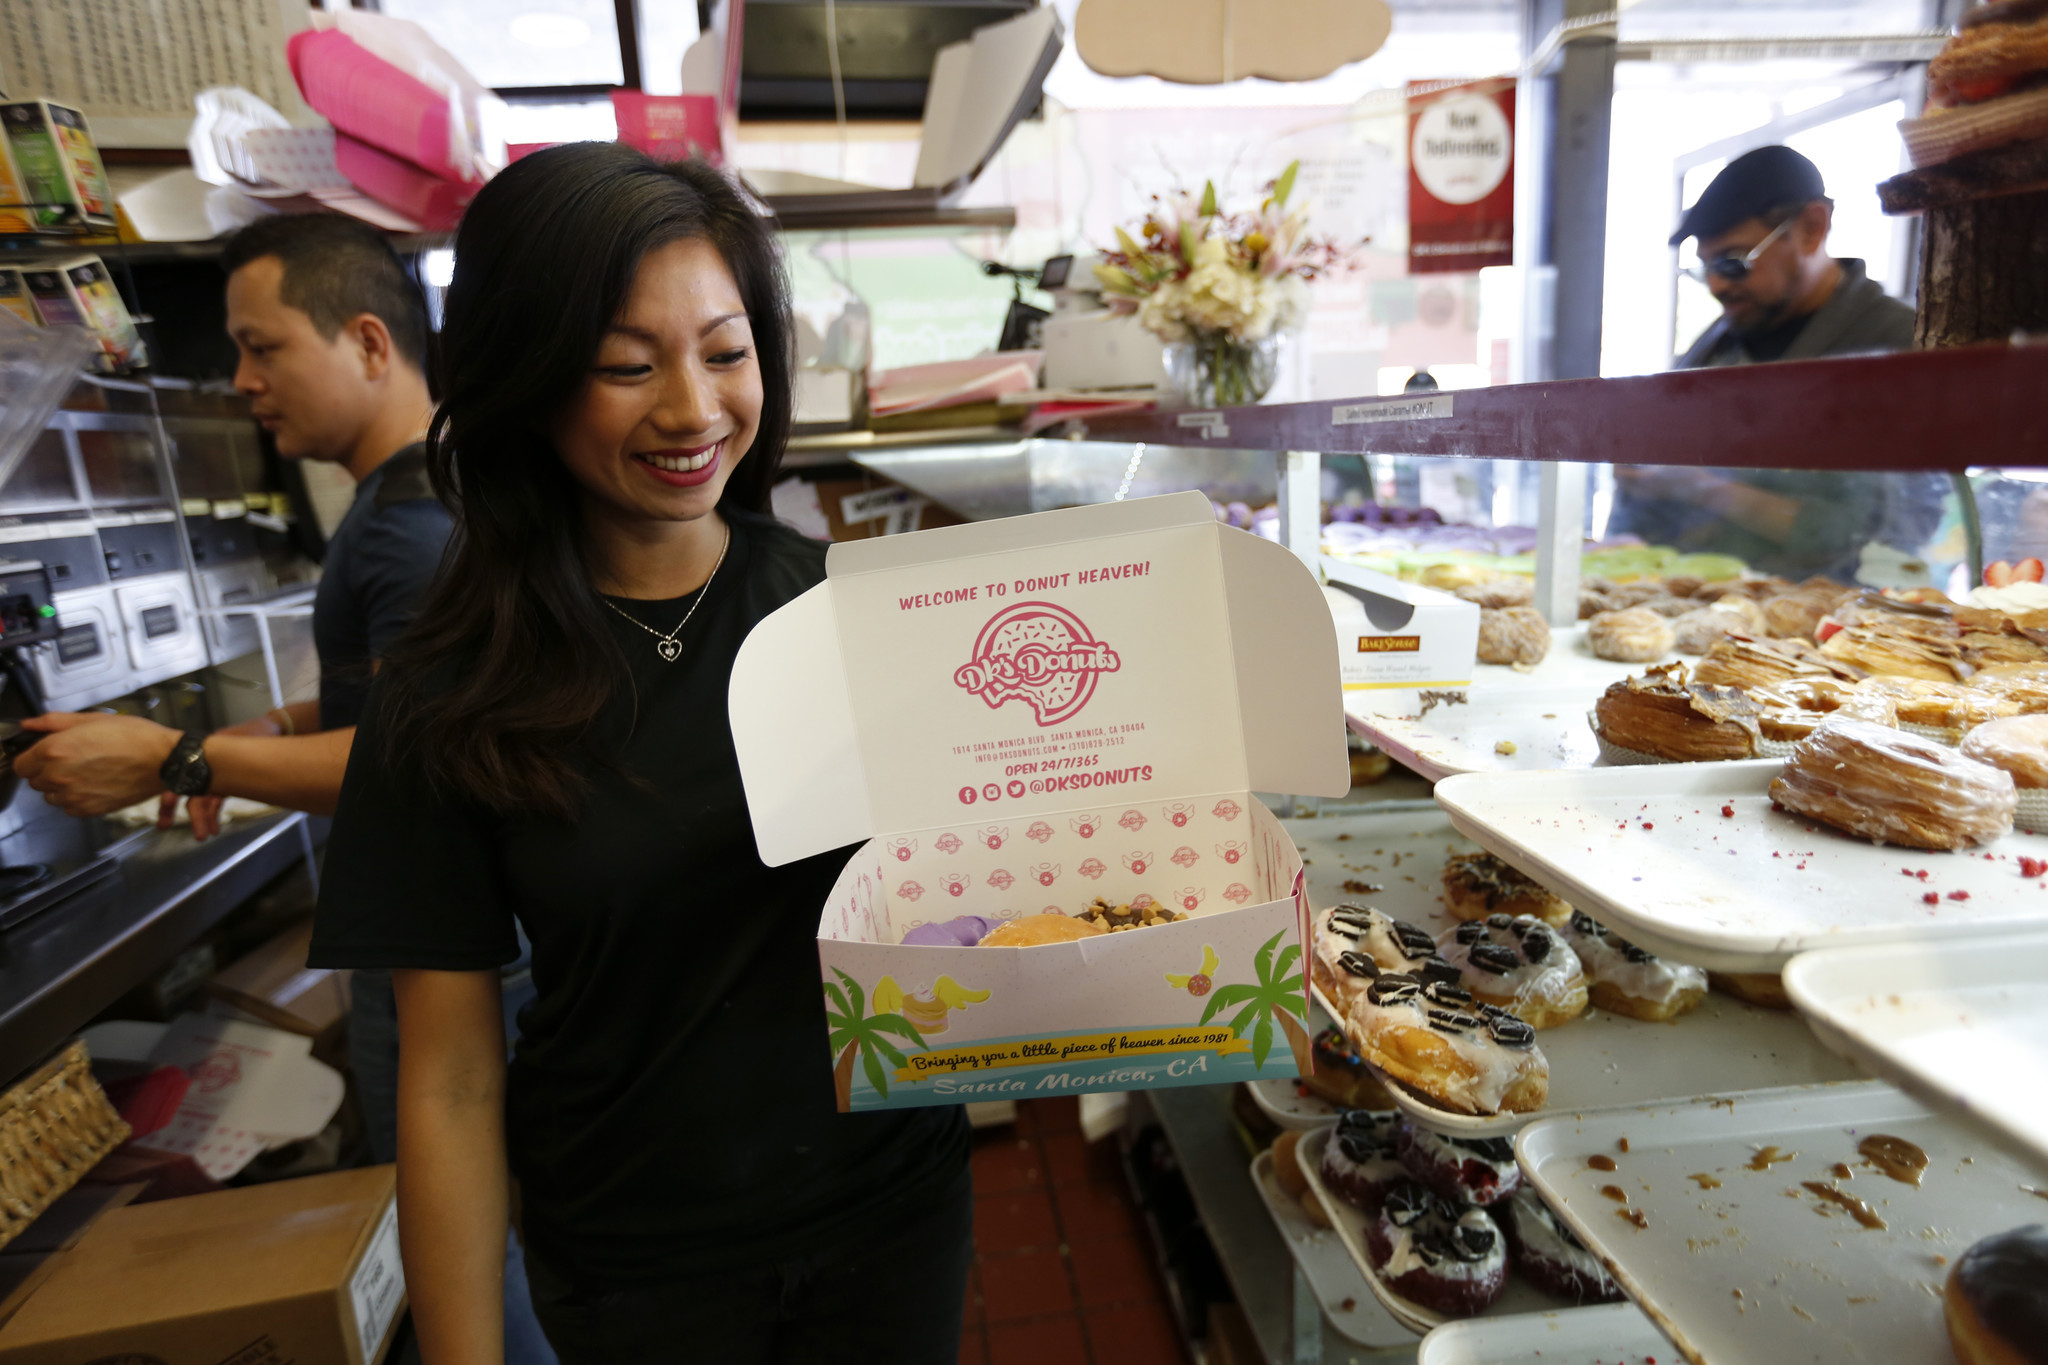 Why are doughnut boxes pink? The answer could only come out of Southern California